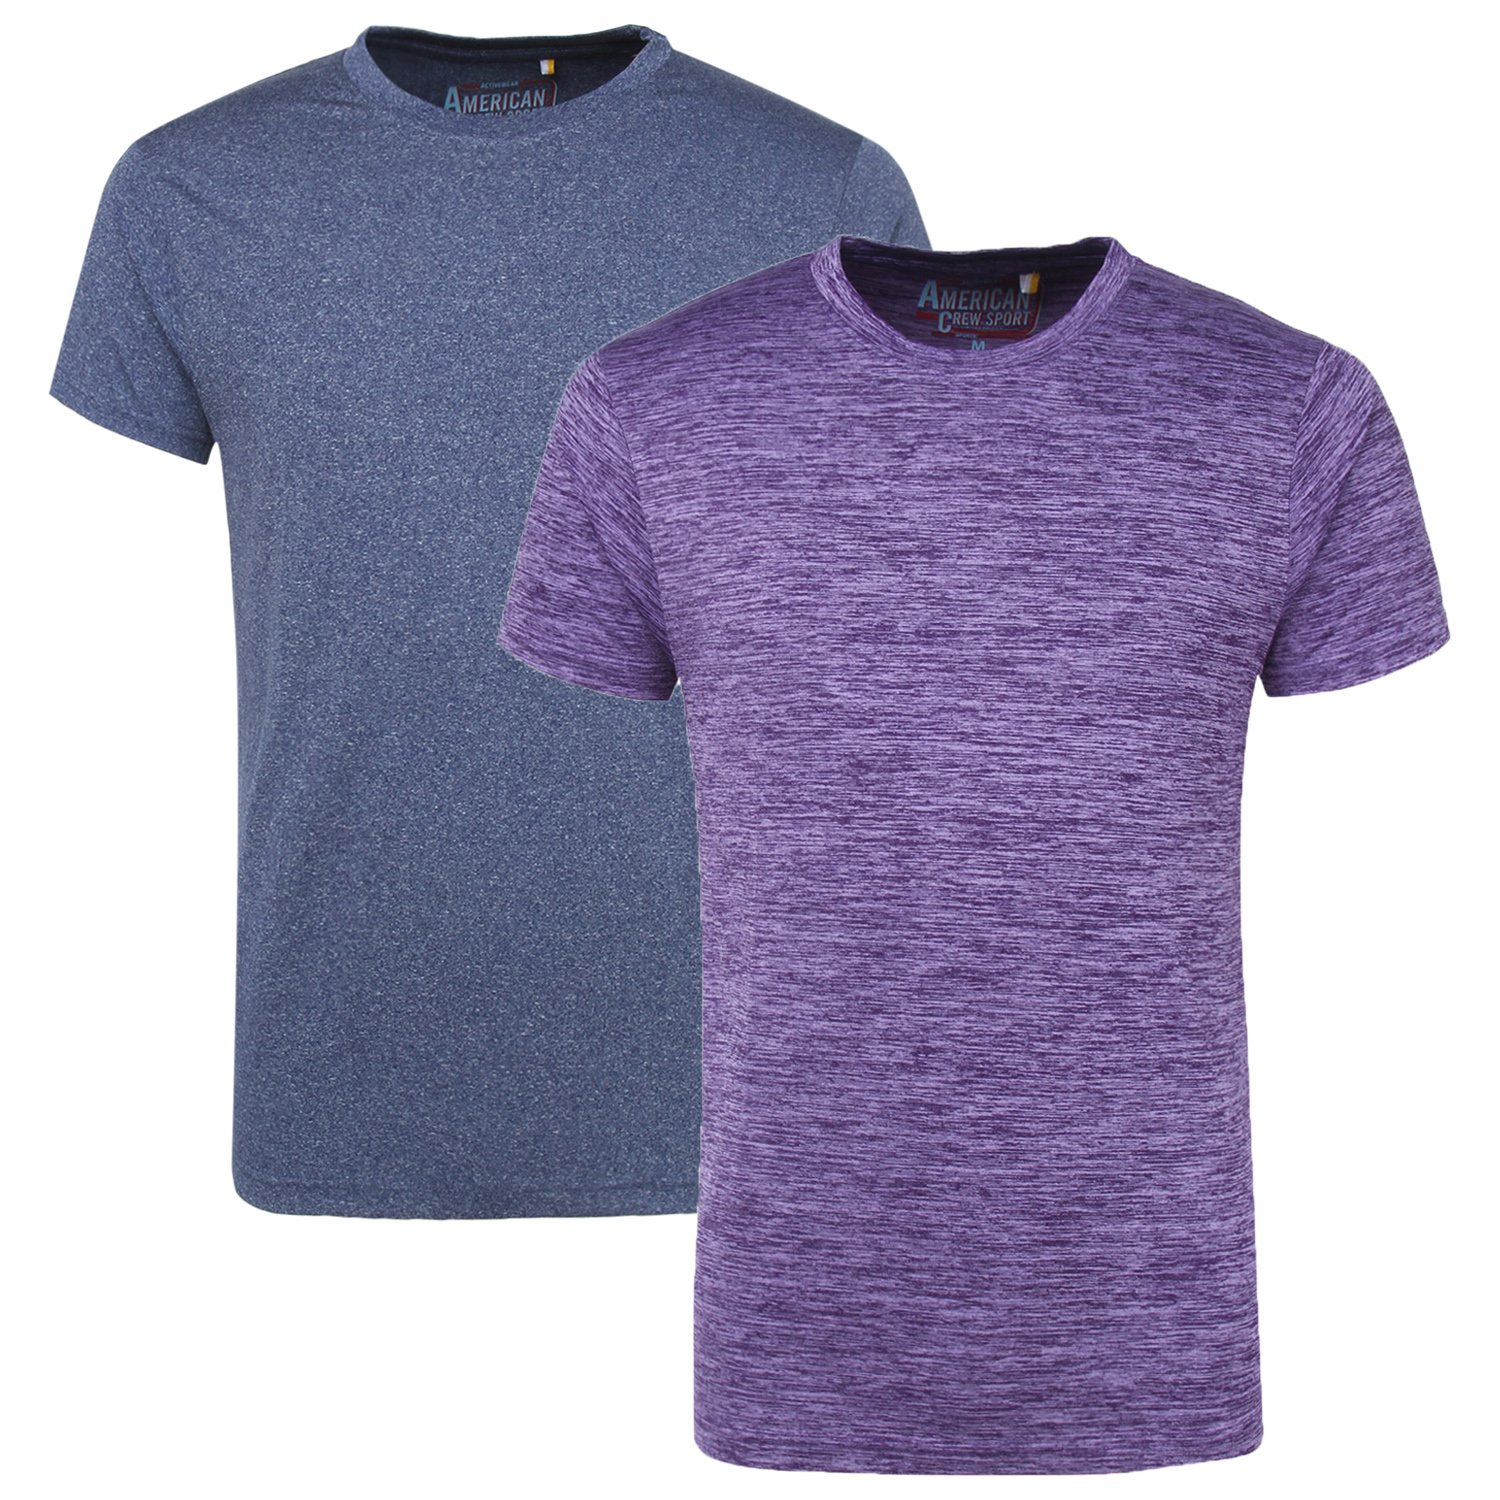 AMERICAN CREW Men's Sports Crew Neck T-Shirt Pack of 2 tees